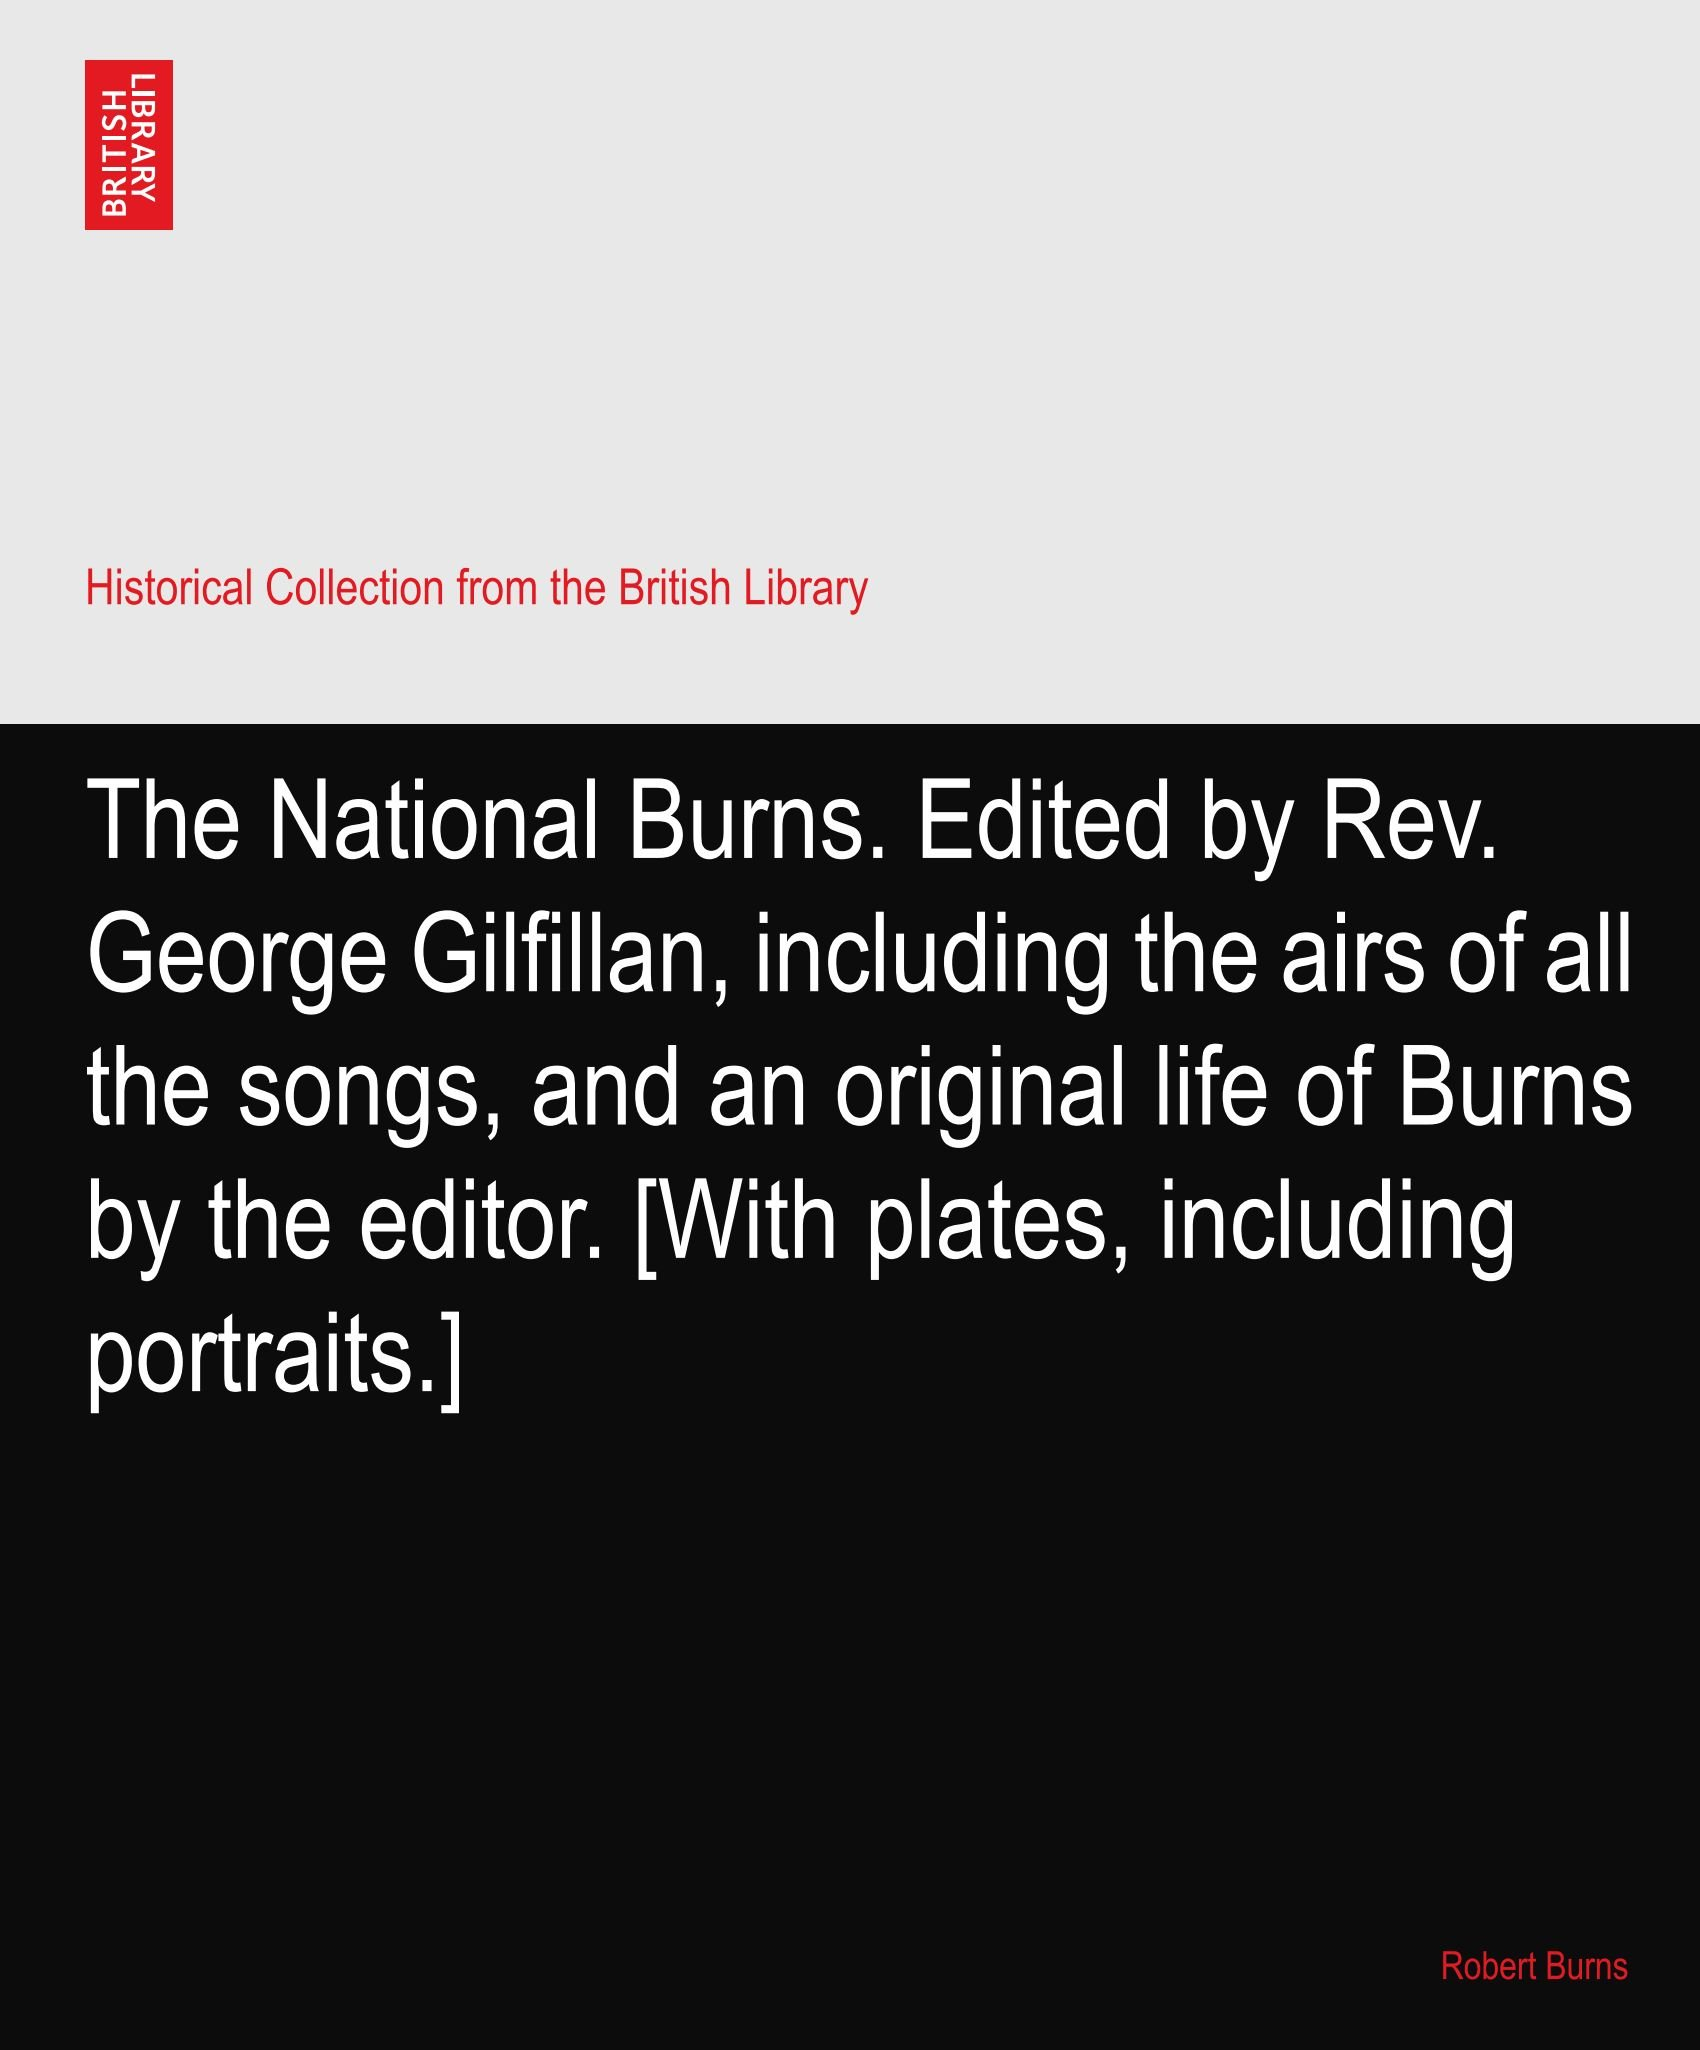 Download The National Burns. Edited by Rev. George Gilfillan, including the airs of all the songs, and an original life of Burns by the editor. [With plates, including portraits.] ebook